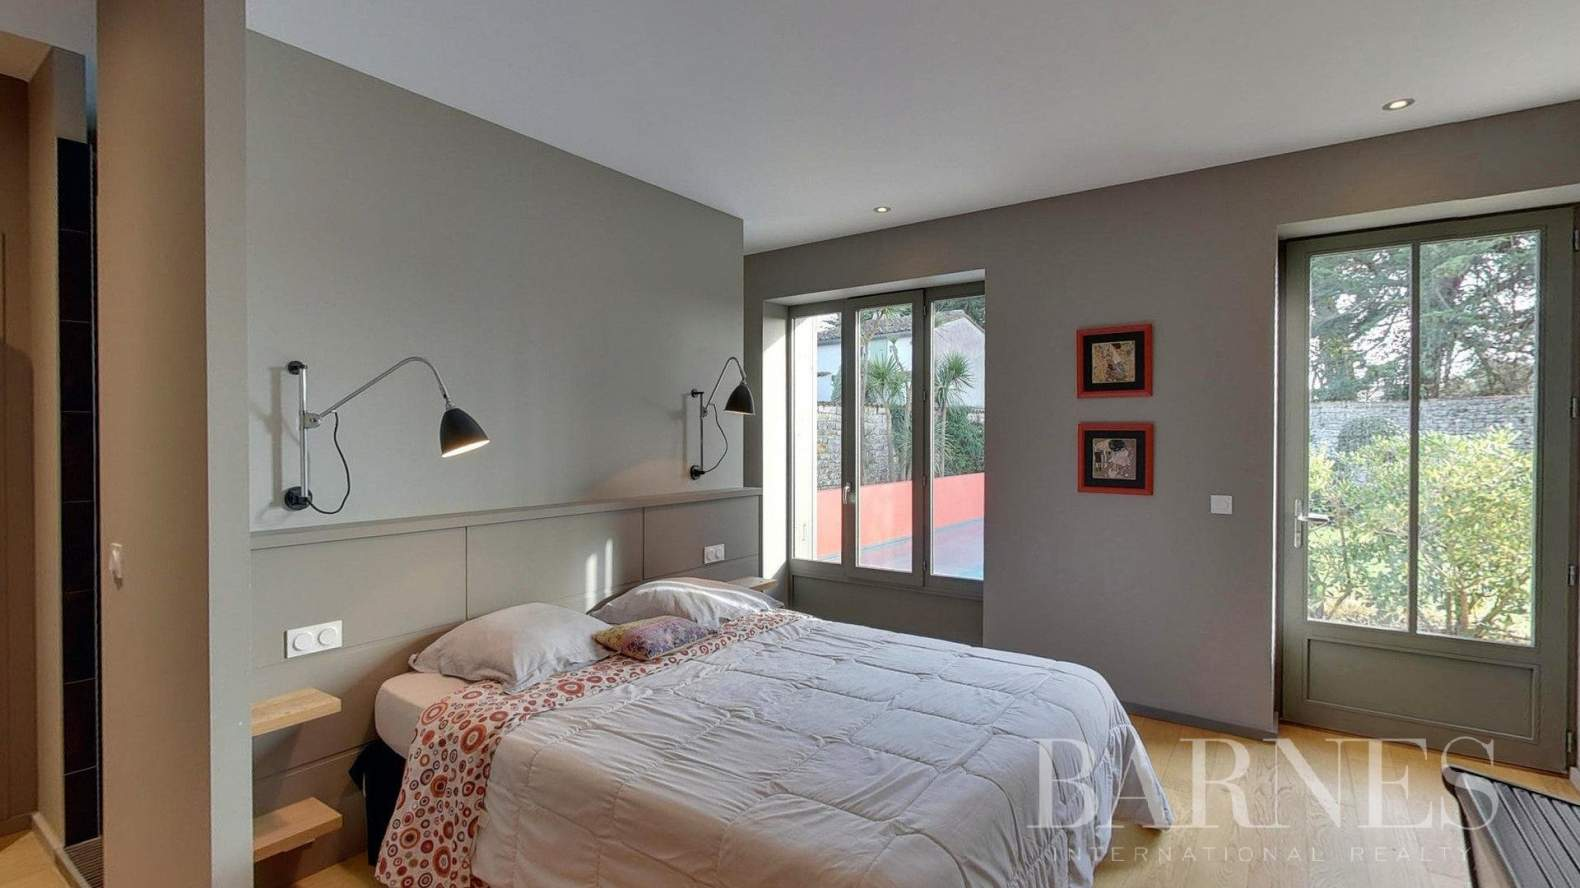 LE BOIS PLAGE EN RE  - House 5 Bedrooms - picture 8